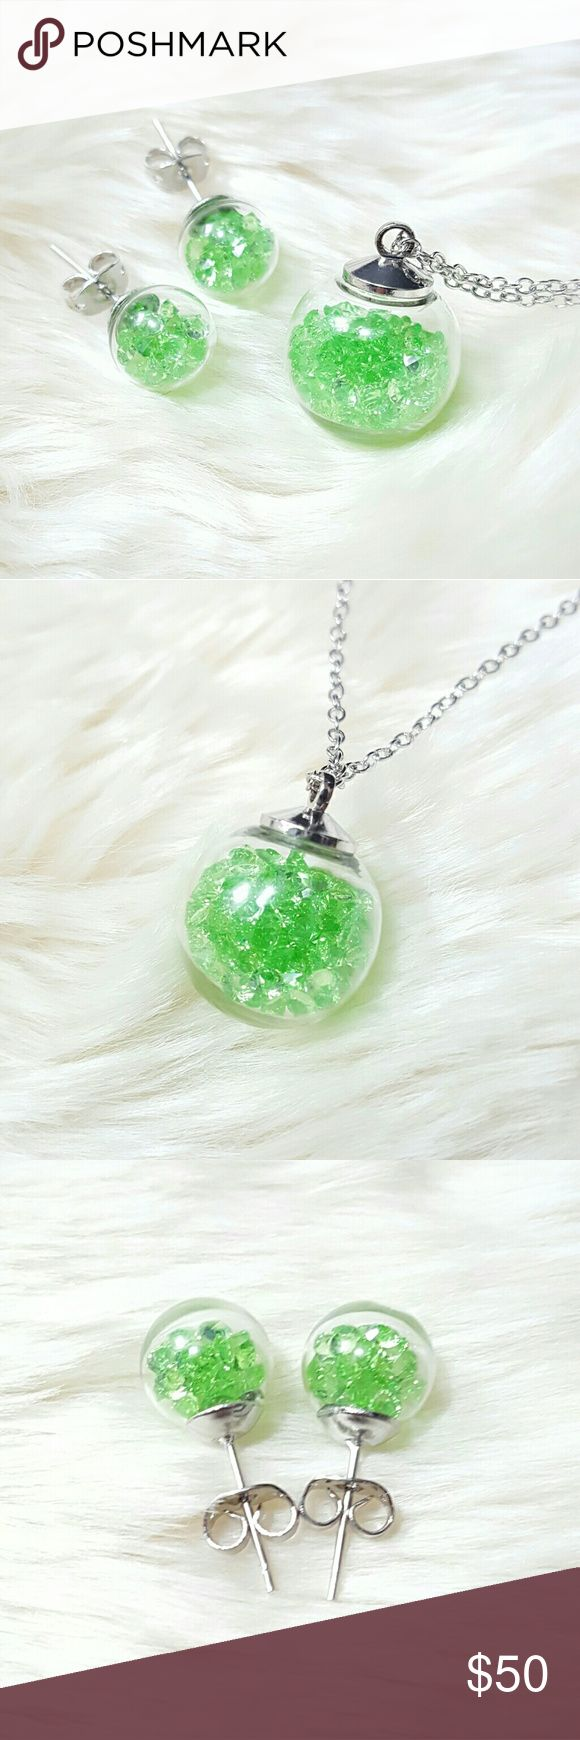 """⤵⤵Wishing Glass Set Swarovski Green Crystals Welcome!   One Of The Kind Elegant Gorgeous Beautiful New 18 mm Round Wishing Glass Set w. Swarovski Crystal Elements & Silver Plated Chain   Order Included: 1set x 18mm Round Wishing Glass Set w. Swarovski Elements Crystal & Silver Plated Chain. Lobster Clasp. Chain size approximately 16.5"""" - 18.0""""  Fast Shipping  Free House Gift (limited amt) Shop close Nov  Come visit for great selection of high end handbag accessories, twilly, purse…"""